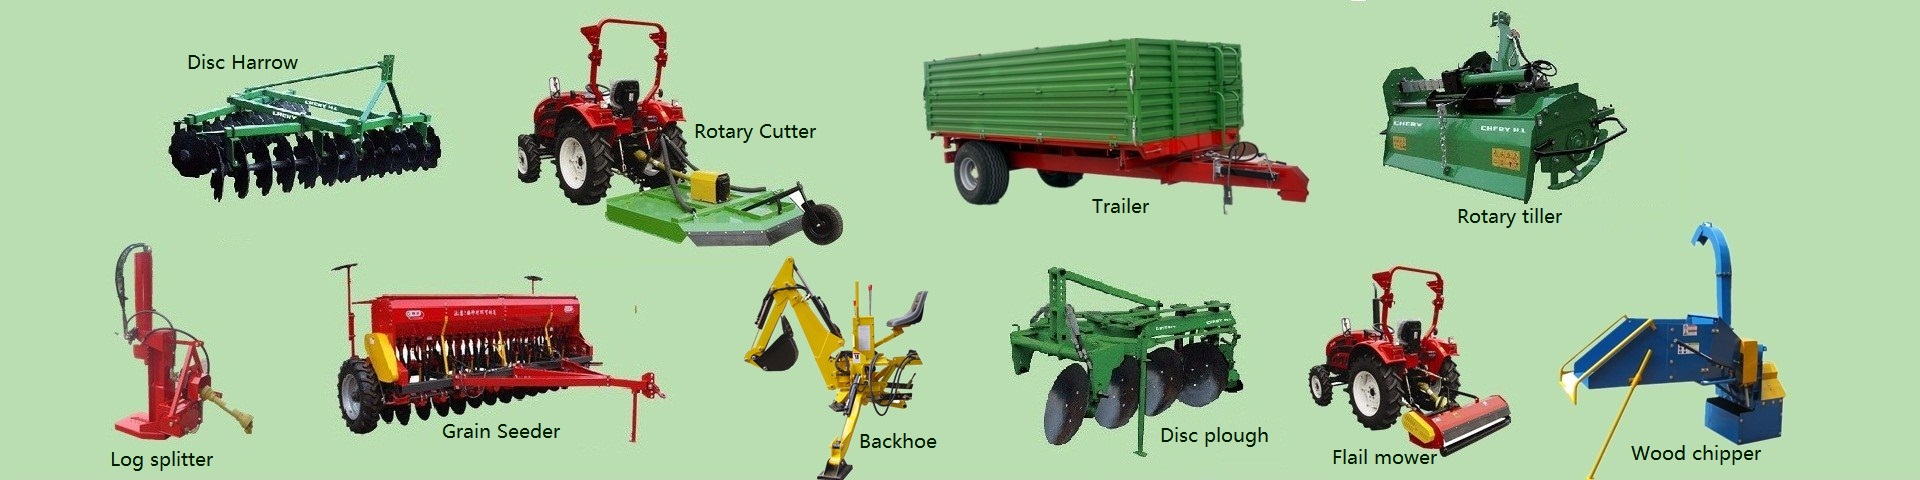 Hubei Tractor Parts : China tractors and farm equipment hubei fotma machinery